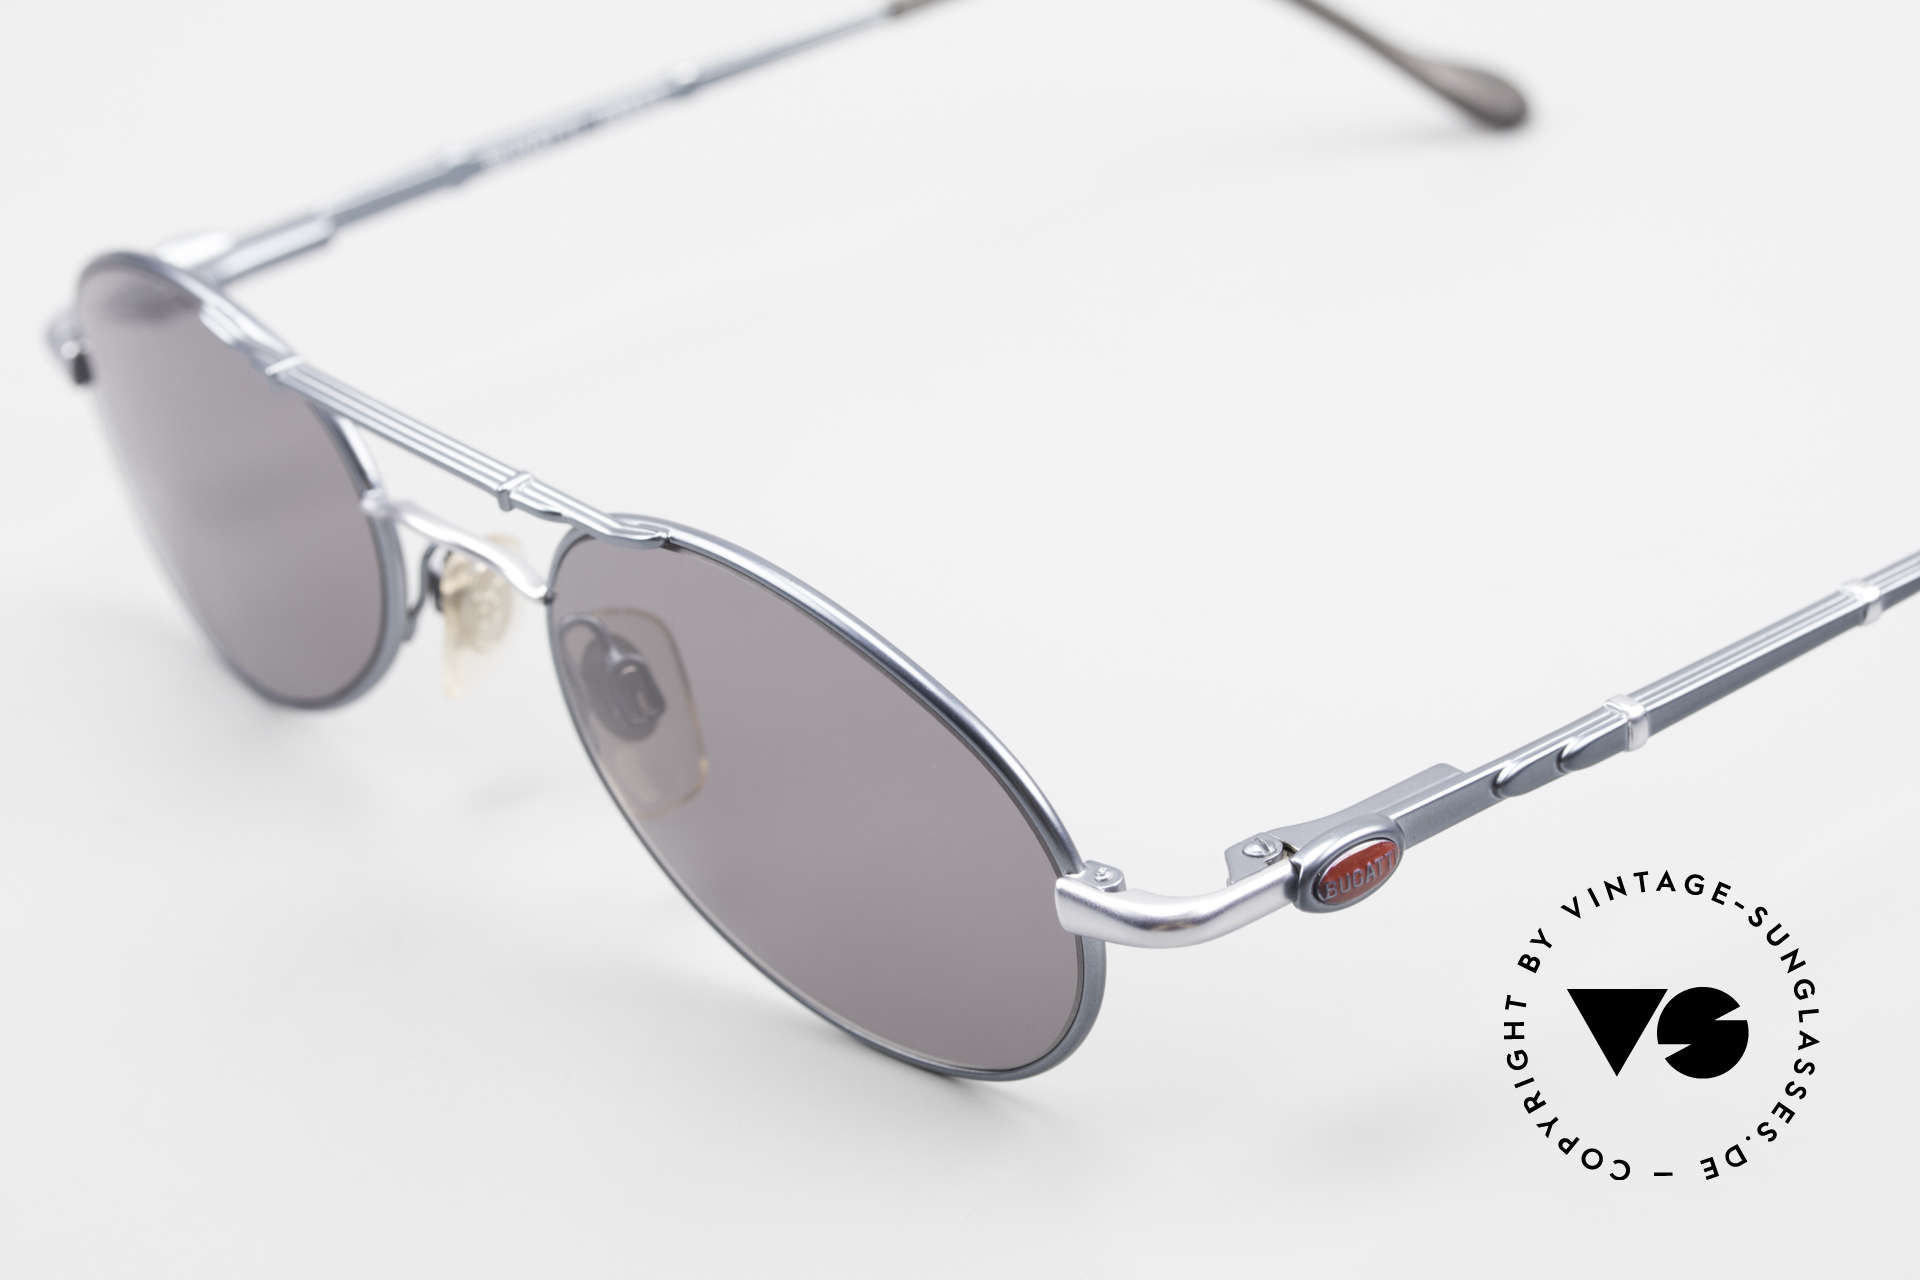 Bugatti 09953 Leaf Spring Temples and Bridge, bridge & temples are shaped like a leaf spring, Made for Men